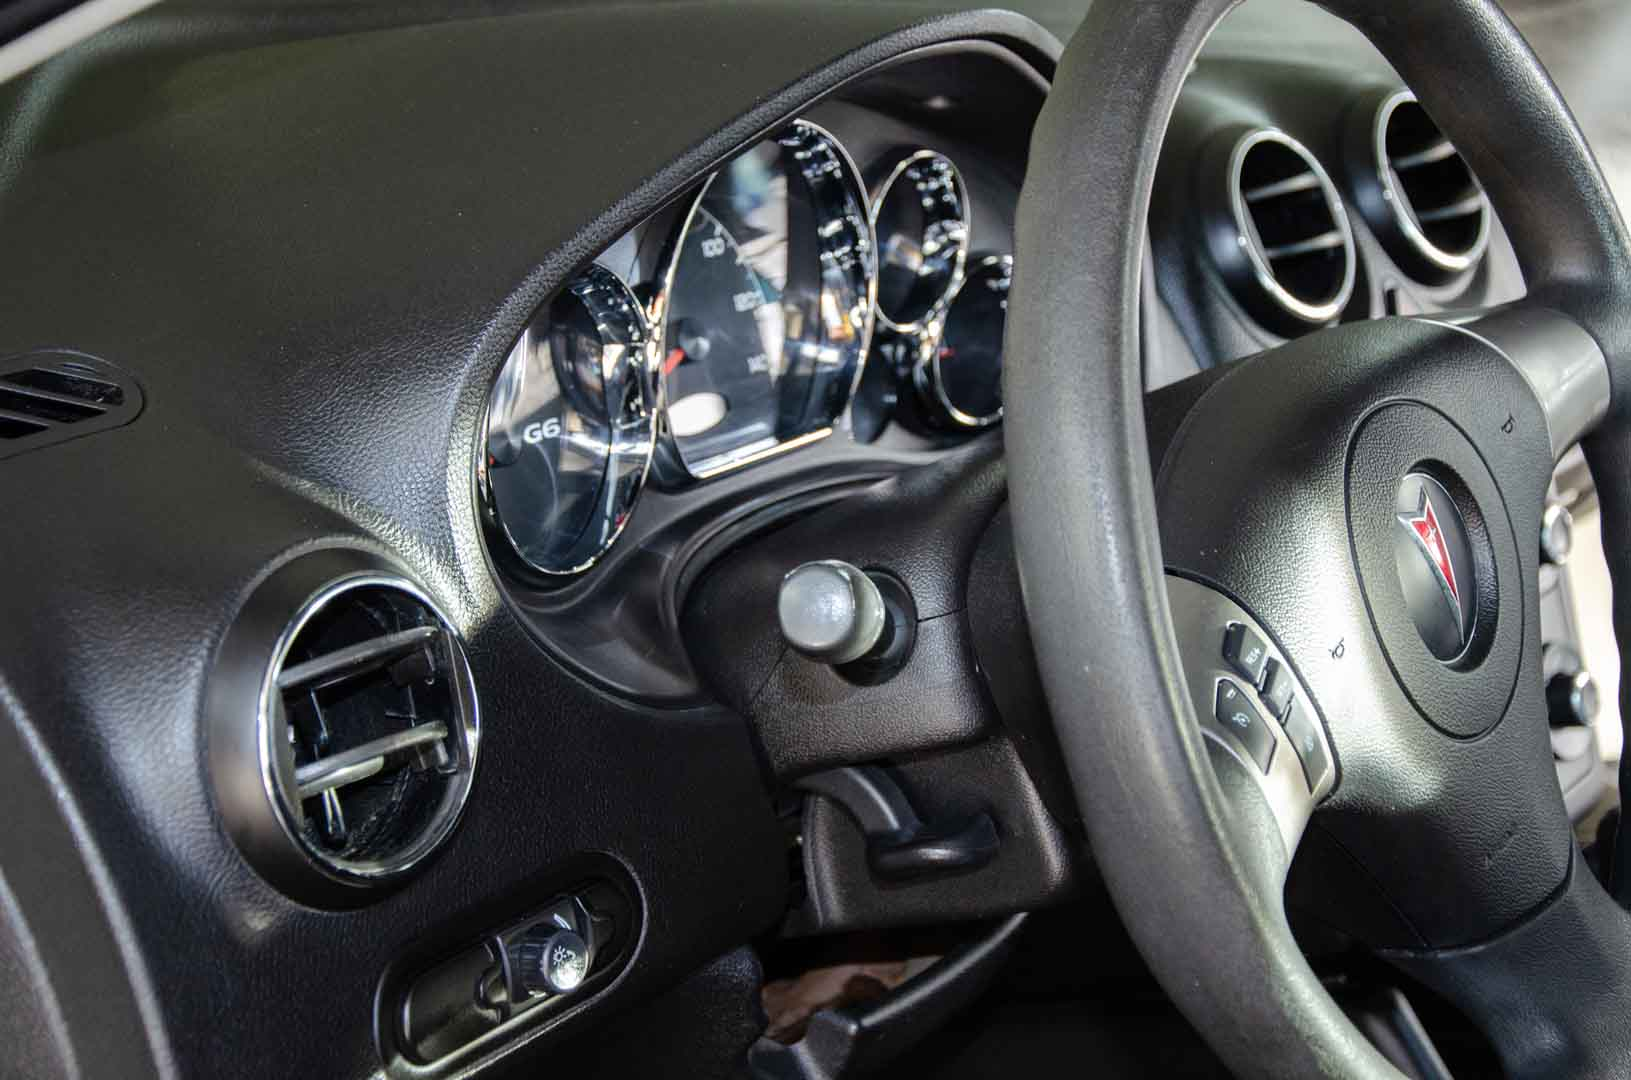 Clean Steering Wheel and Cluster Gauges